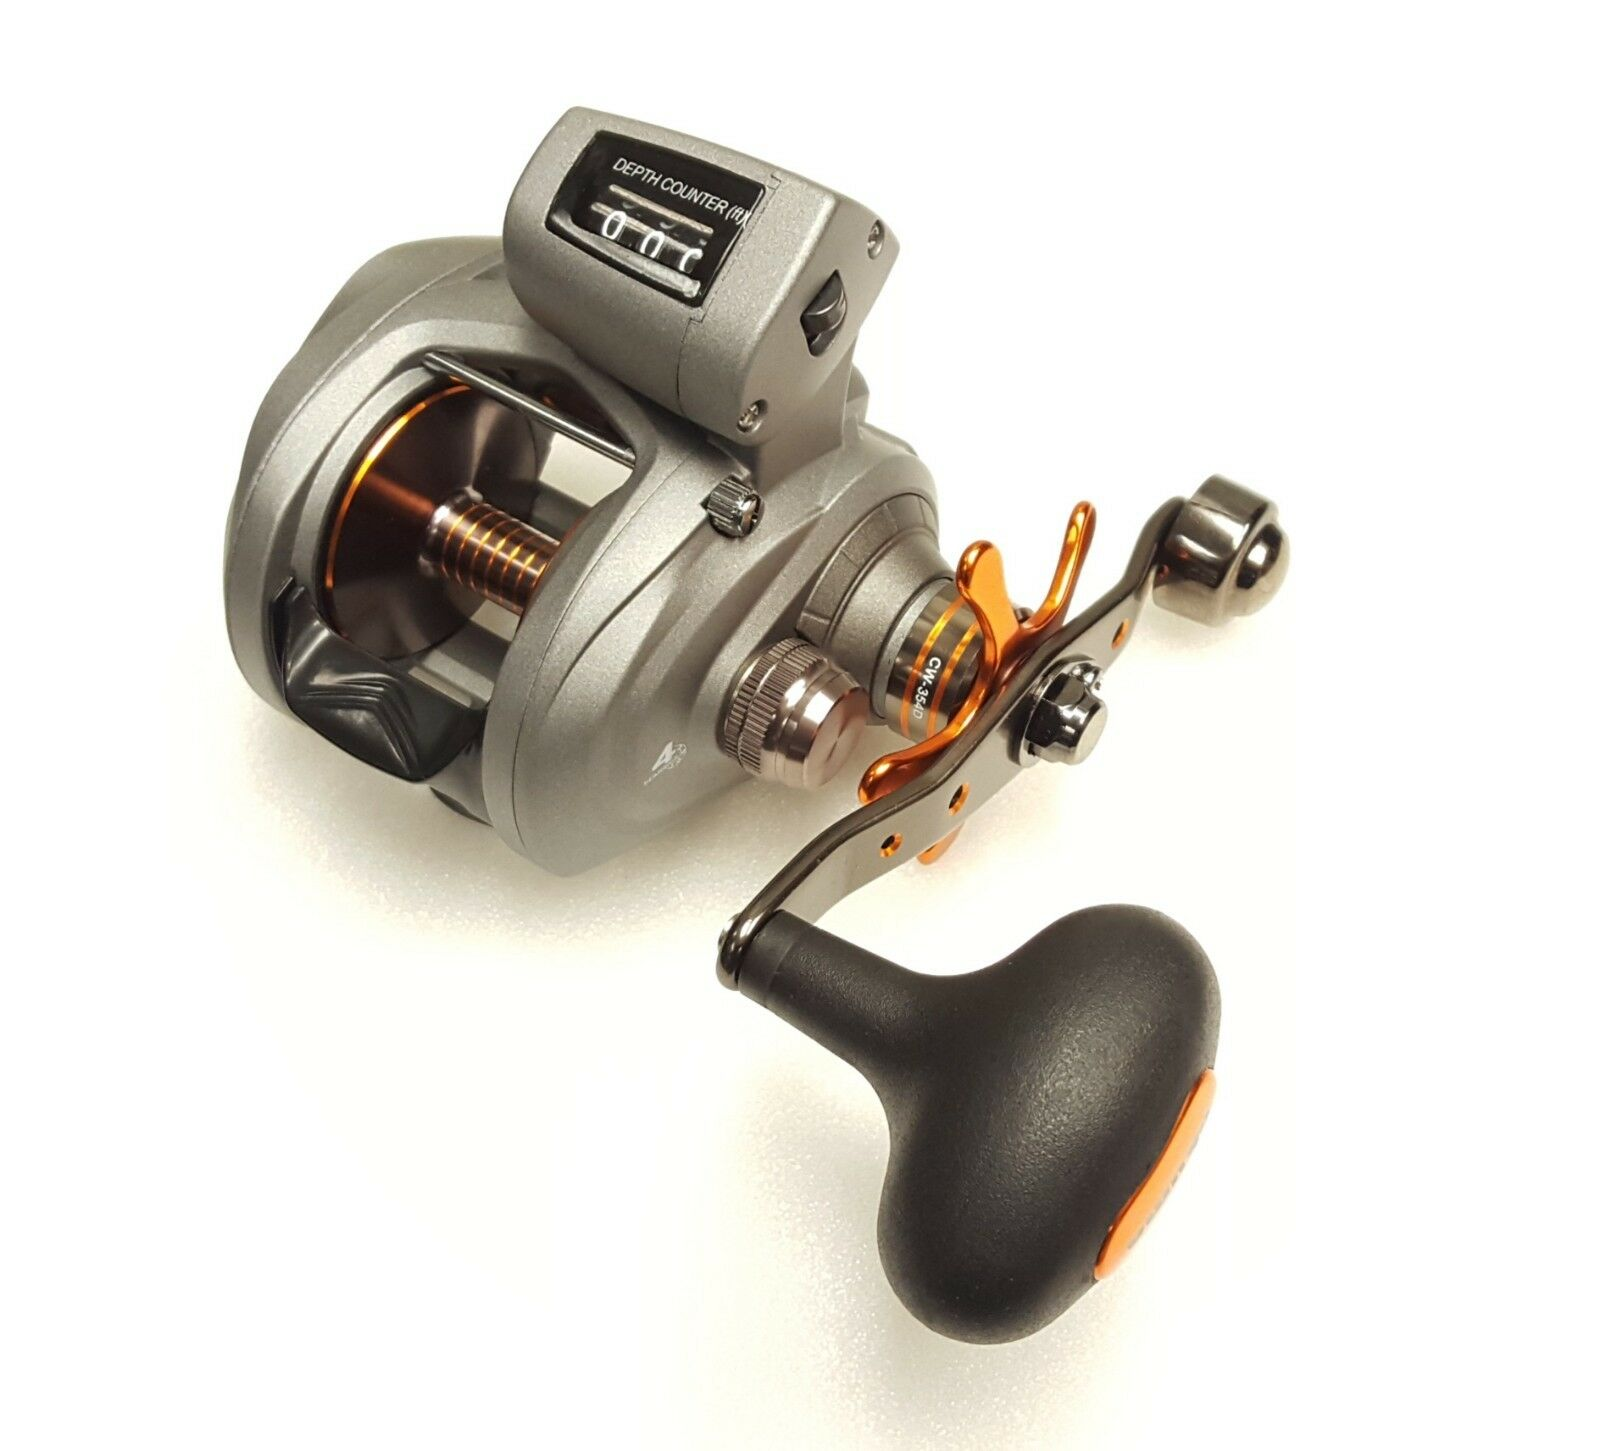 Okuma Cold Water Line Counter 5.4:1 Baitcast Reel, Right Hand Hand Right - CW-354D 936fee